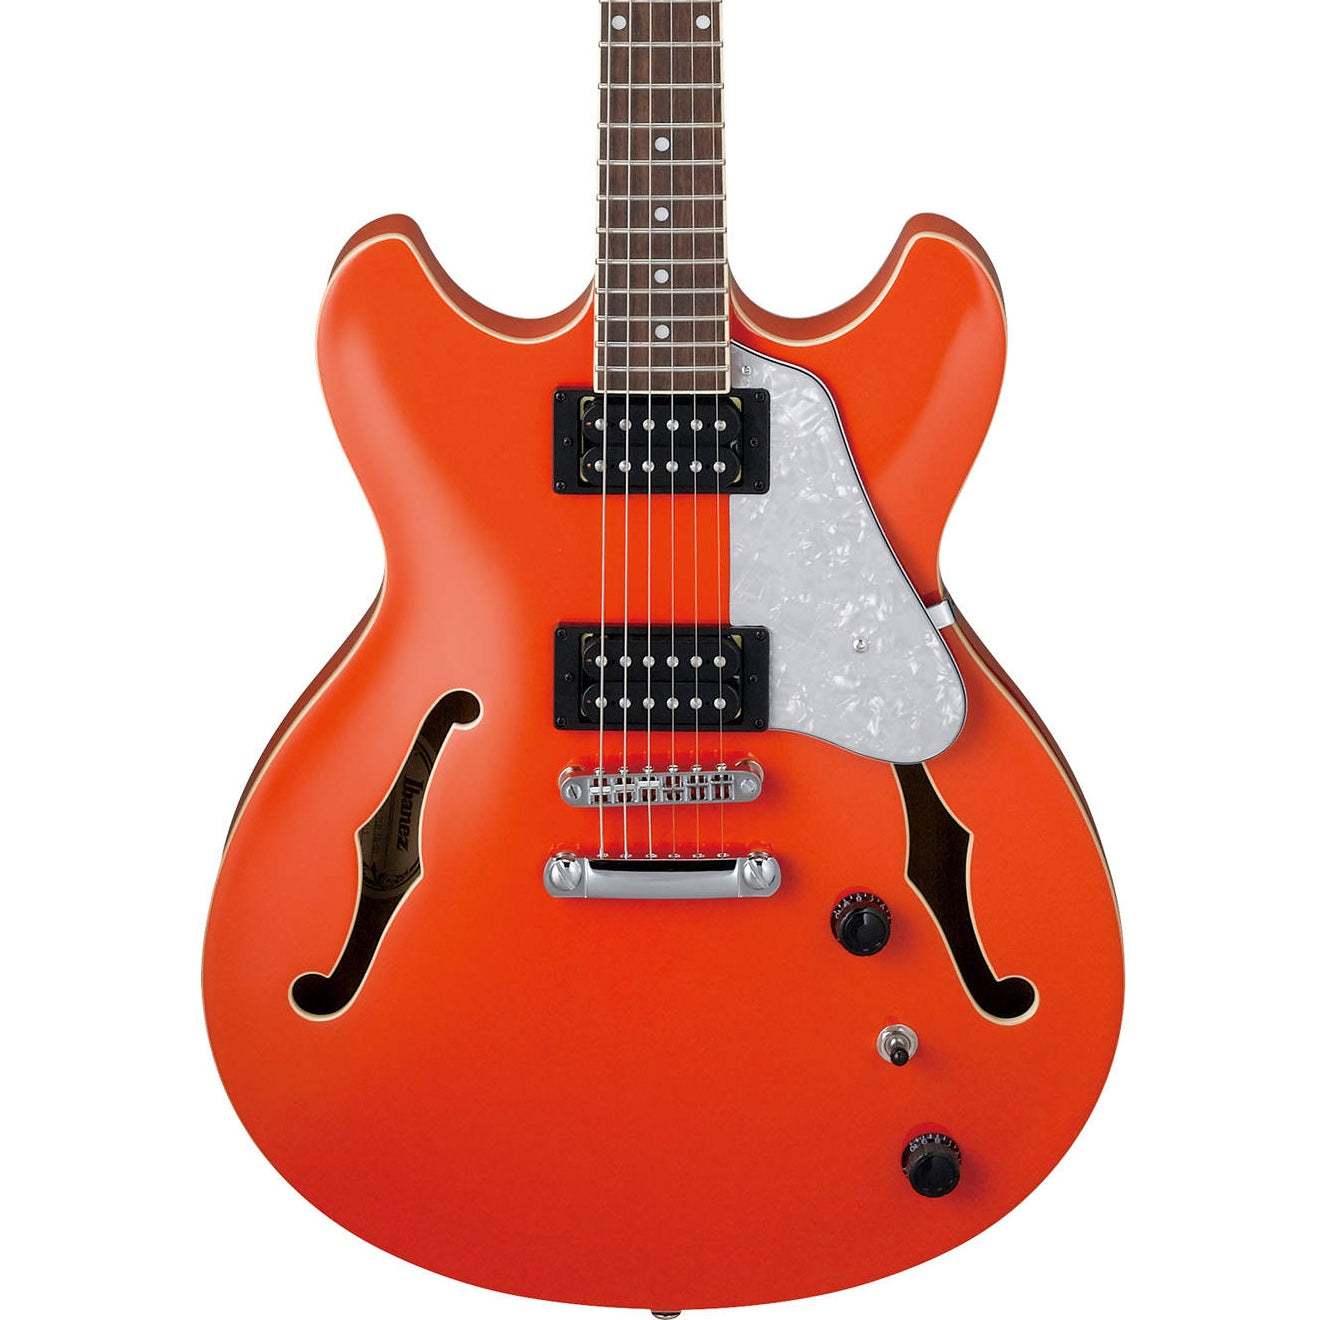 Ibanez AS63-SFG Artcore Vibrante Twilight Orange | Music Experience | Shop Online | South Africa